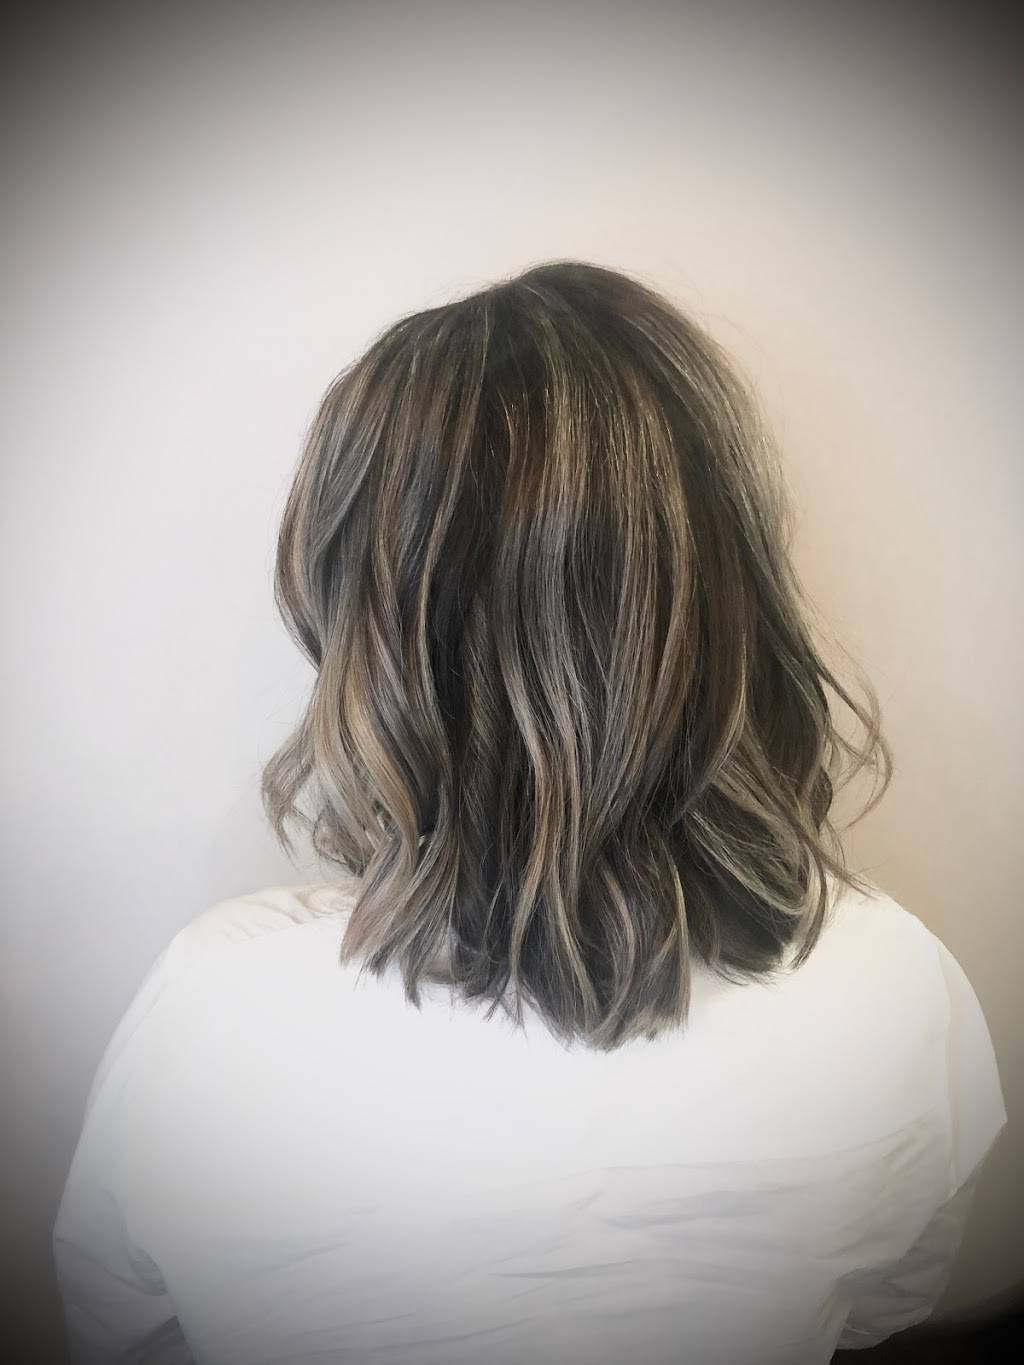 Currin Marcum at Roots Salon - hair care    Photo 9 of 10   Address: 6299 Central Ave, St. Petersburg, FL 33710, USA   Phone: (727) 248-9375